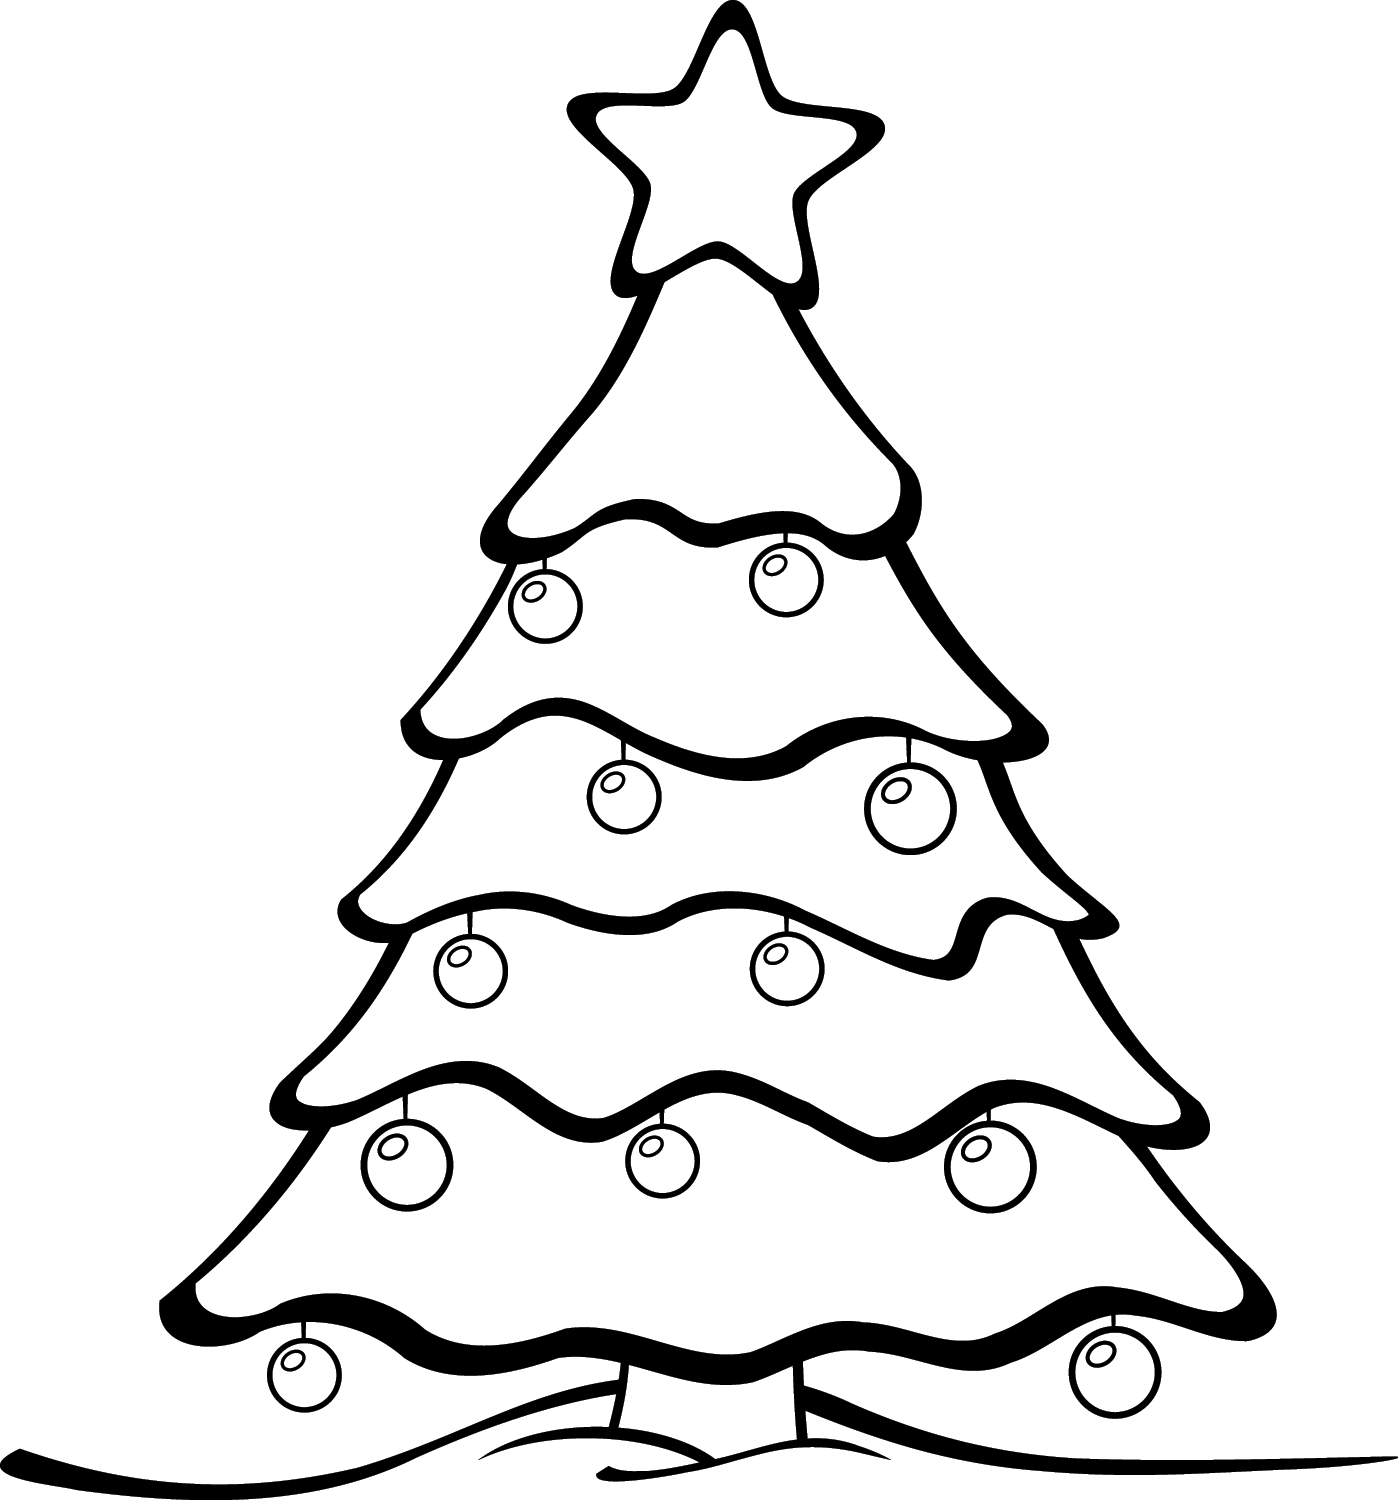 Christmas Tree Outline.Best Christmas Tree Outline 7011 Clipartion Com